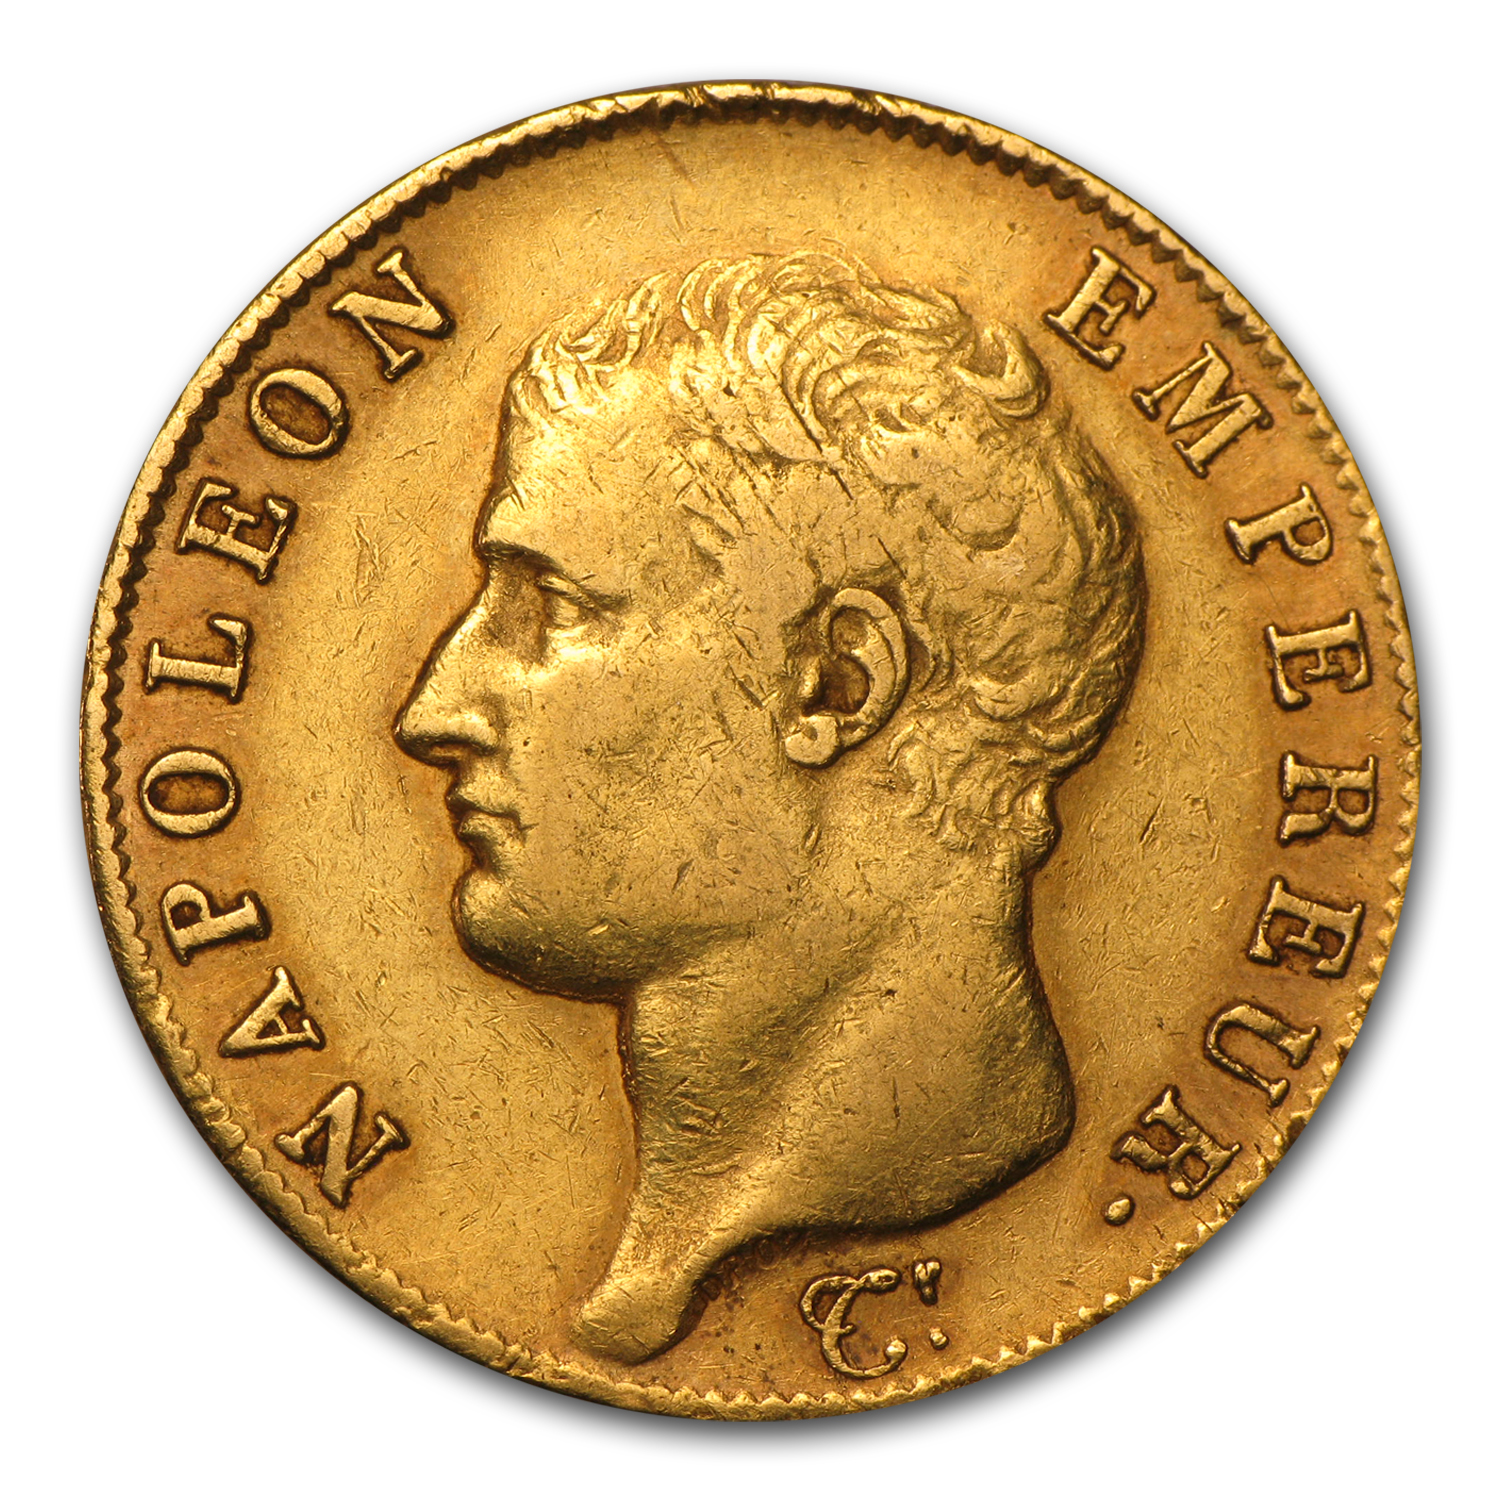 France 1807-1813 Gold 40 Franc of Napoleon I (Circulated)